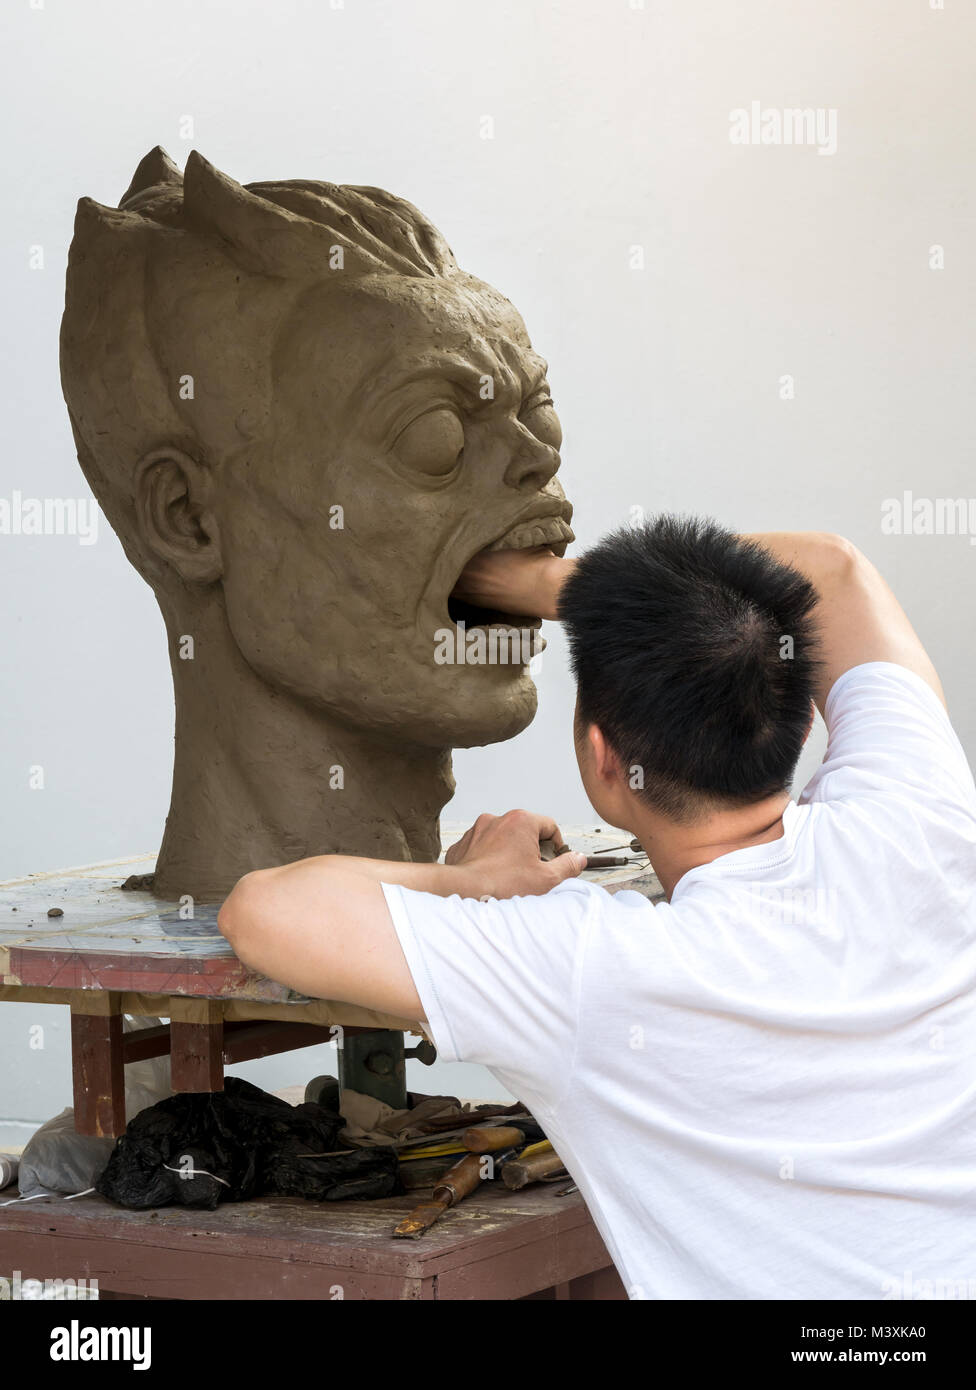 Sculptor working on his clay sculpture, a big portrait,with white background - Stock Image